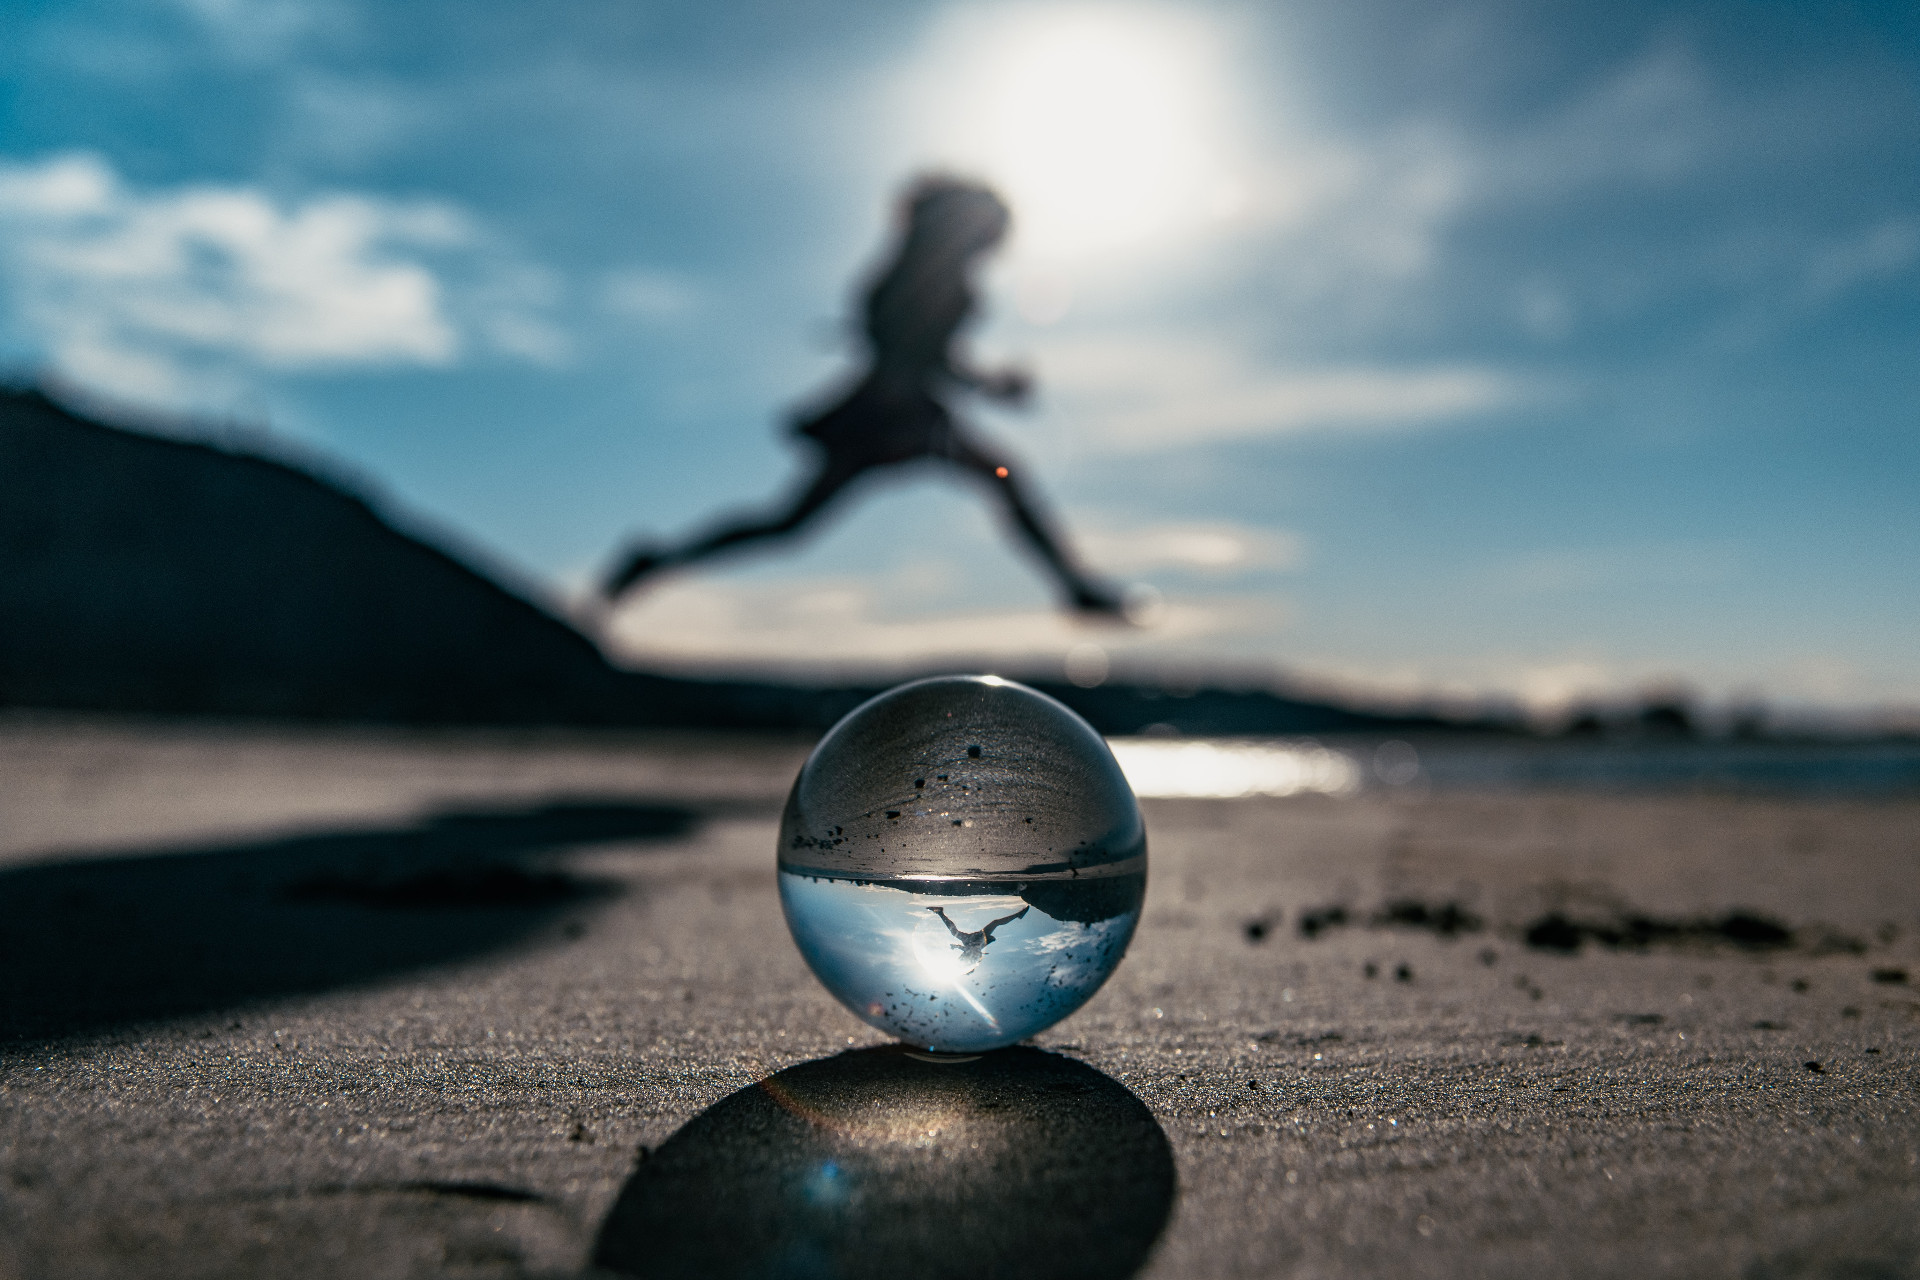 Shadow of a person jumping over a crystal ball